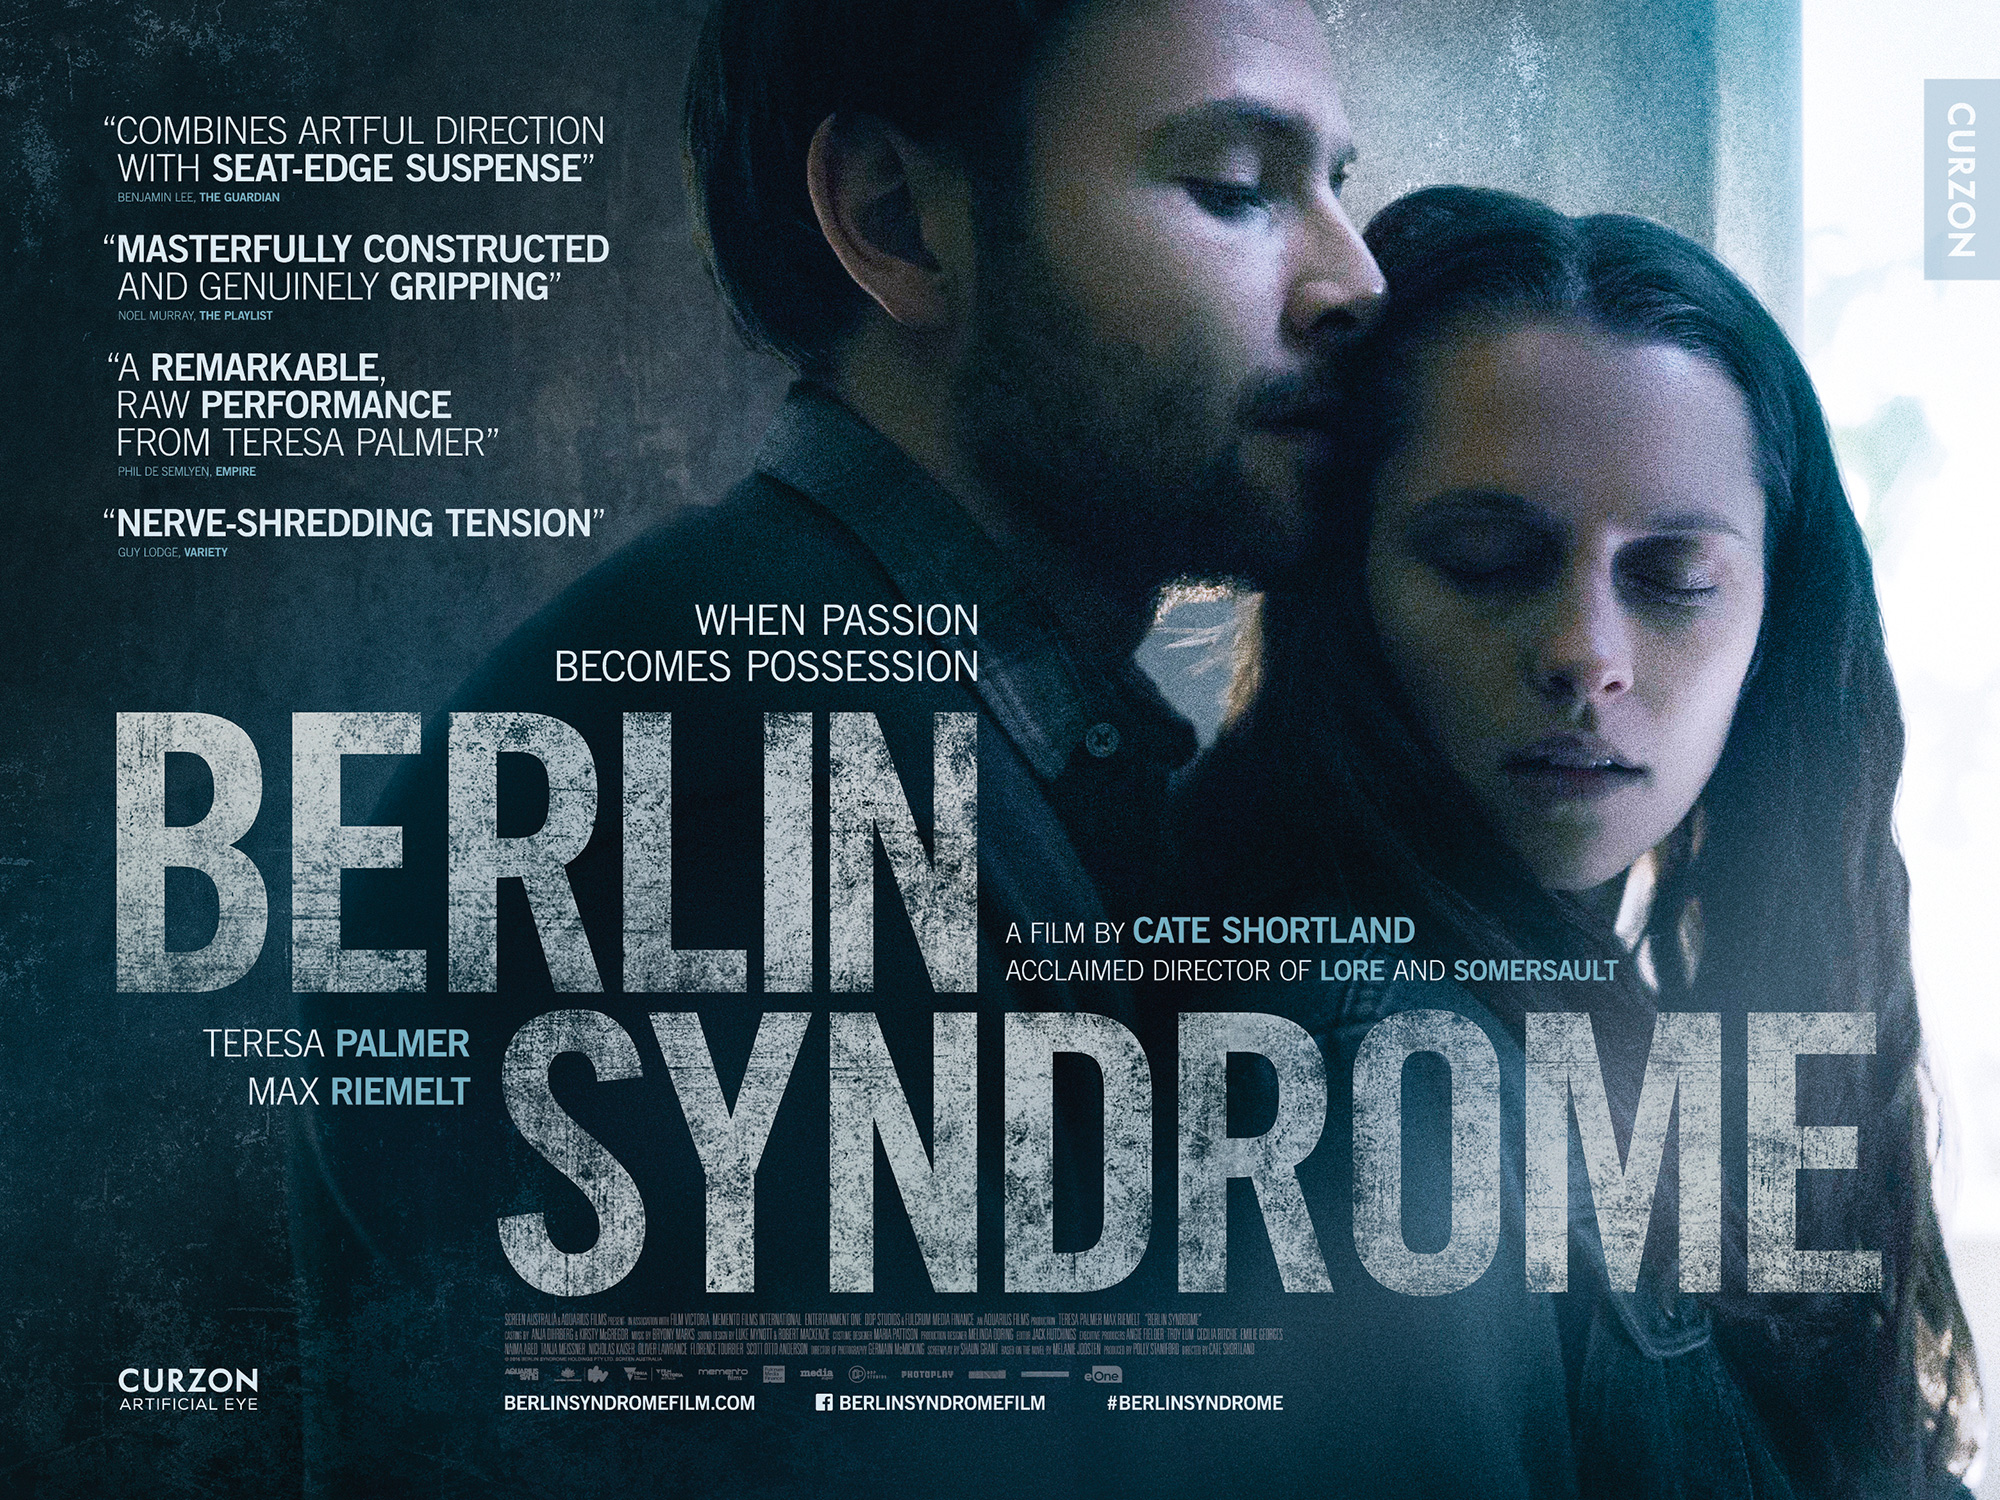 berlin-syndrome-poster.jpg